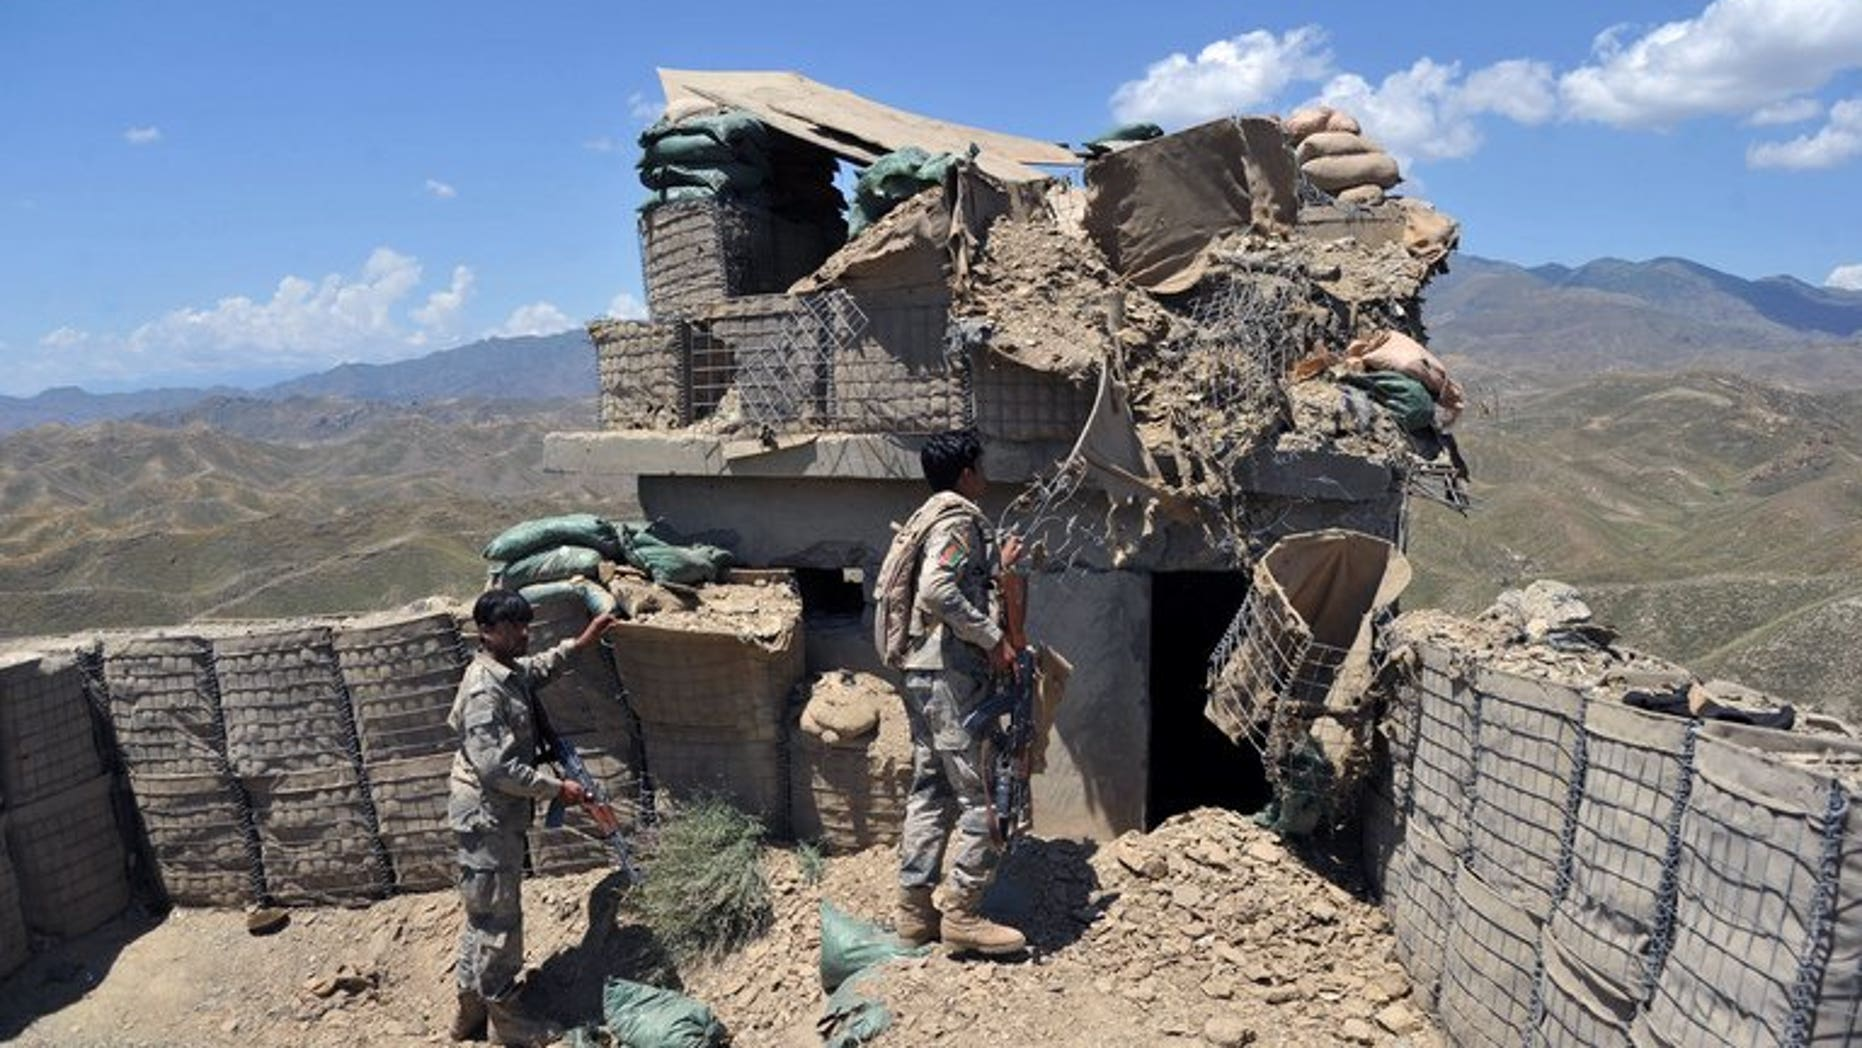 """Afghan border policemen inspect a bunker destroyed during clashes between Afghan border police and Pakistani troops in Goshta district of Nangarhar province on May 8, 2013. Pakistan accused Afghan forces of killing five Pakistanis on Wednesday in cross-border """"indiscriminate firing"""" in its southwestern Baluchistan province."""